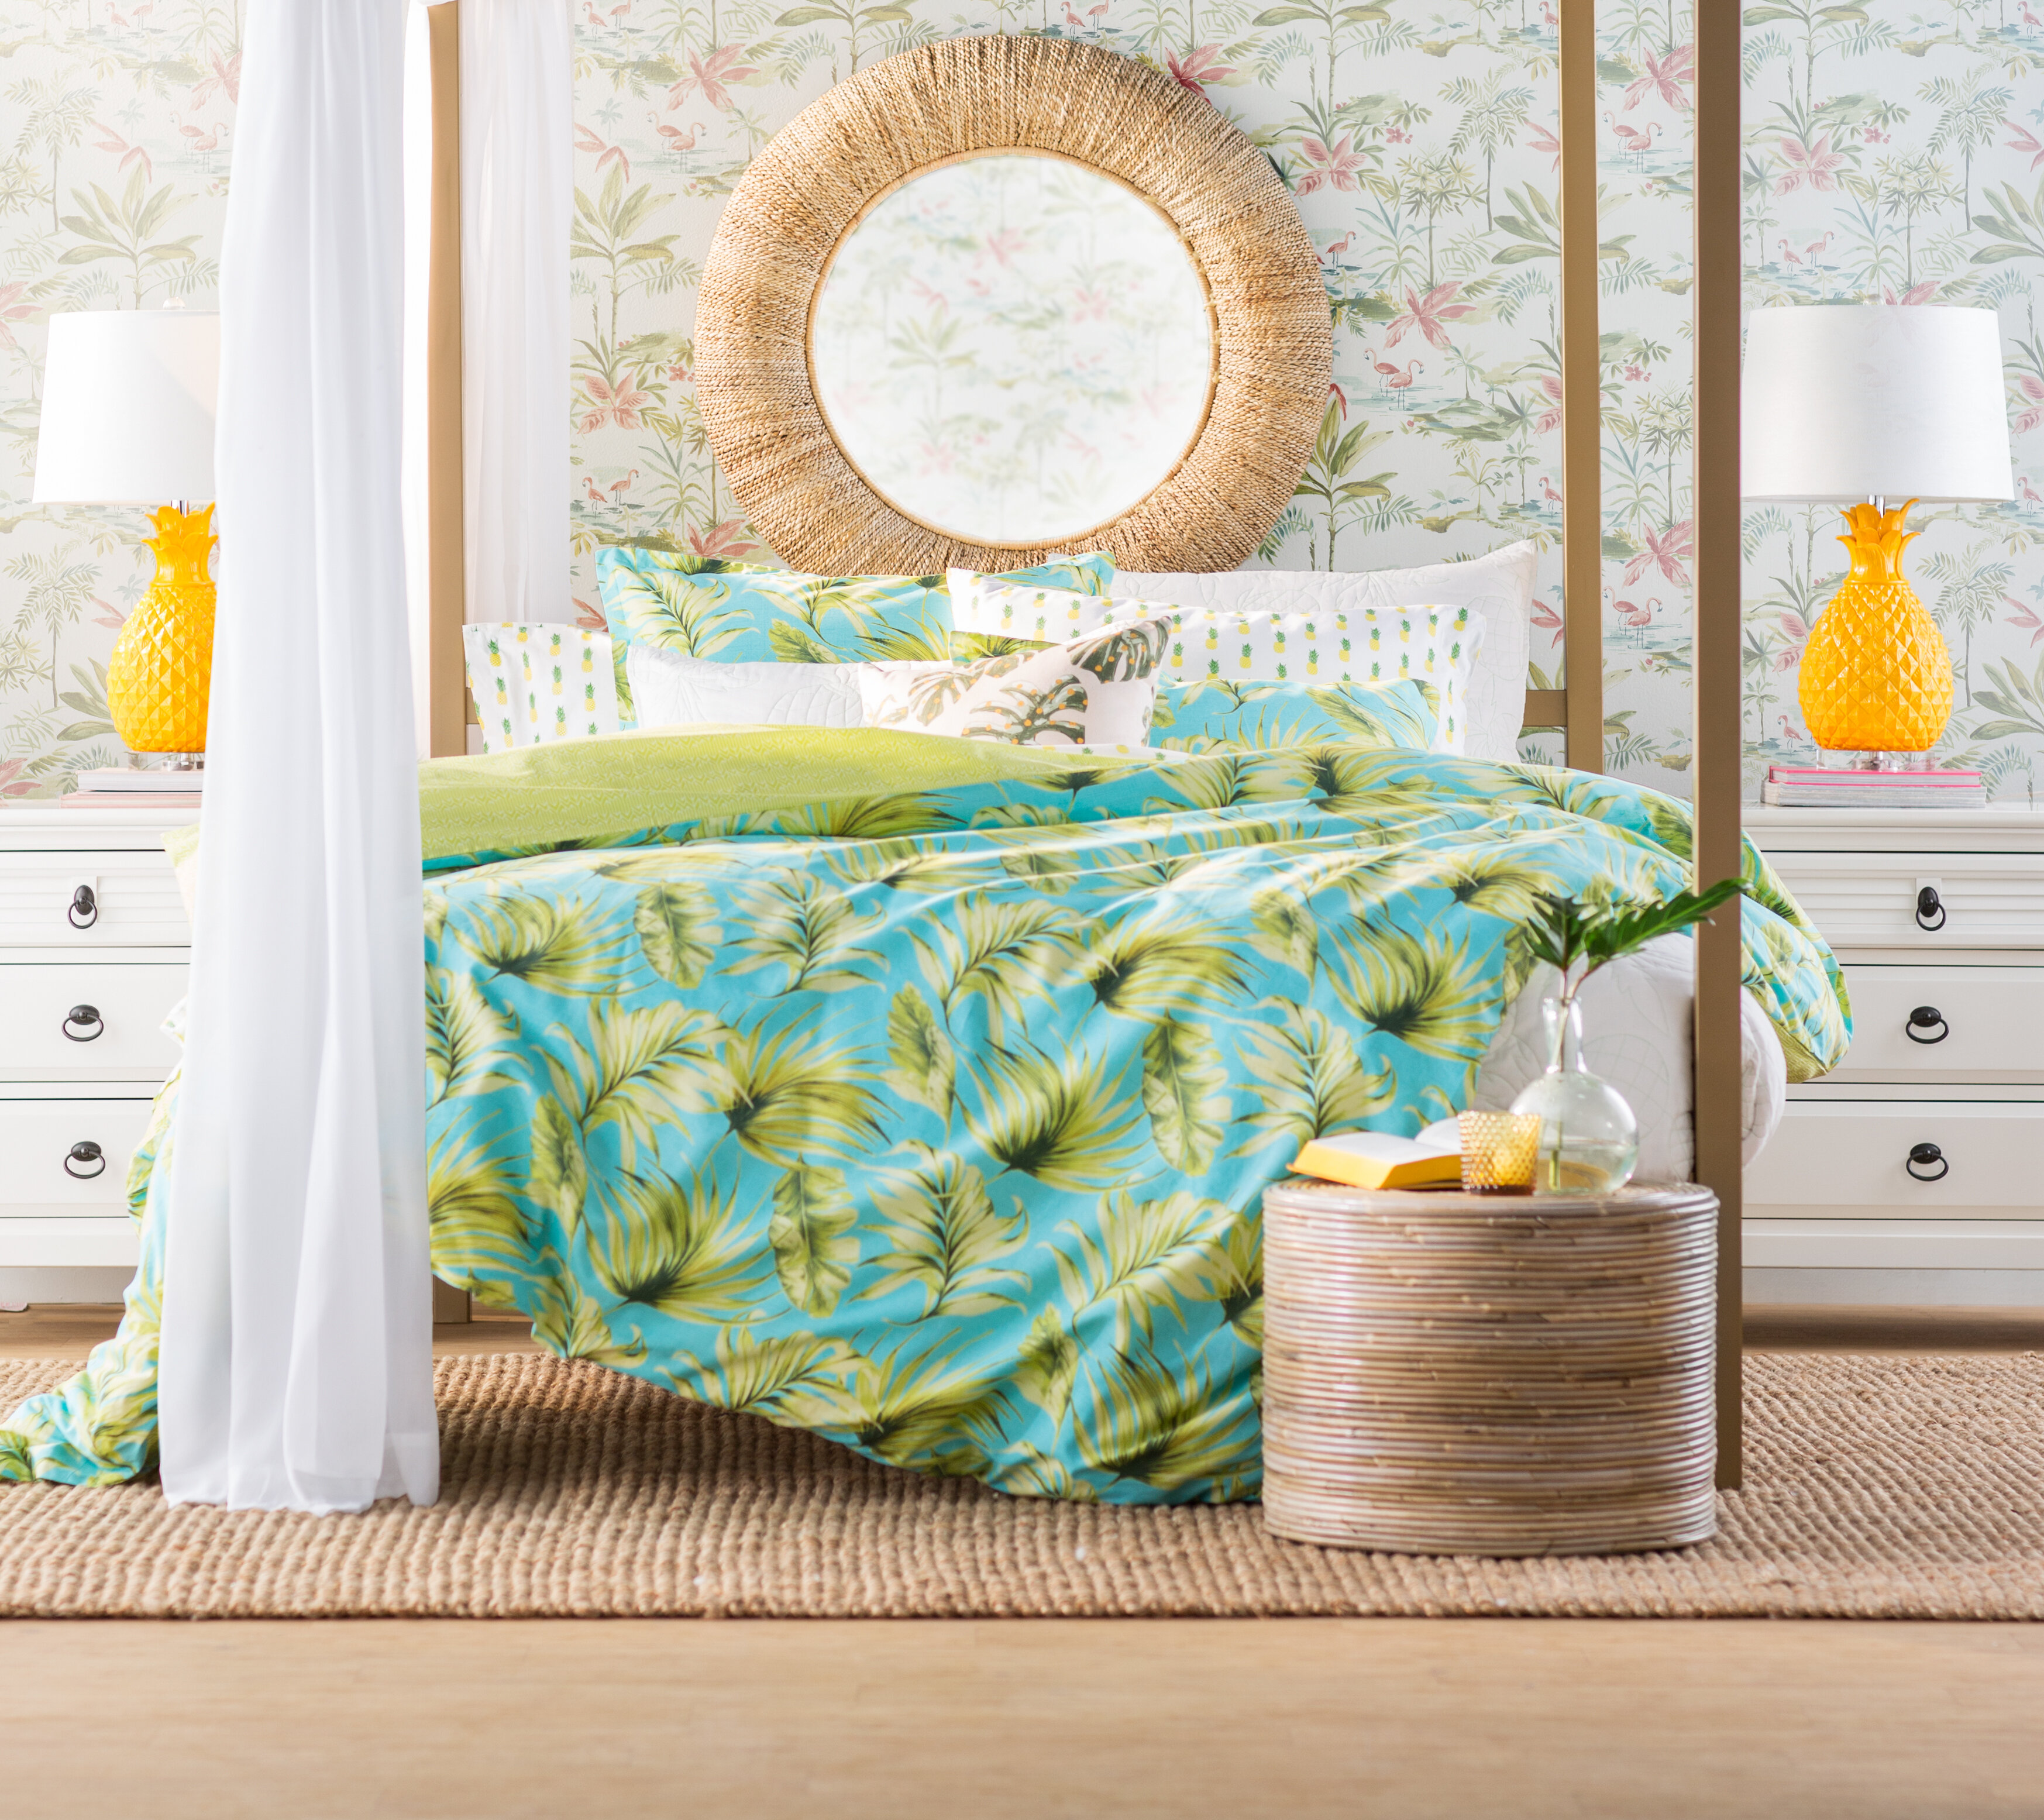 bed with tropical bedspread